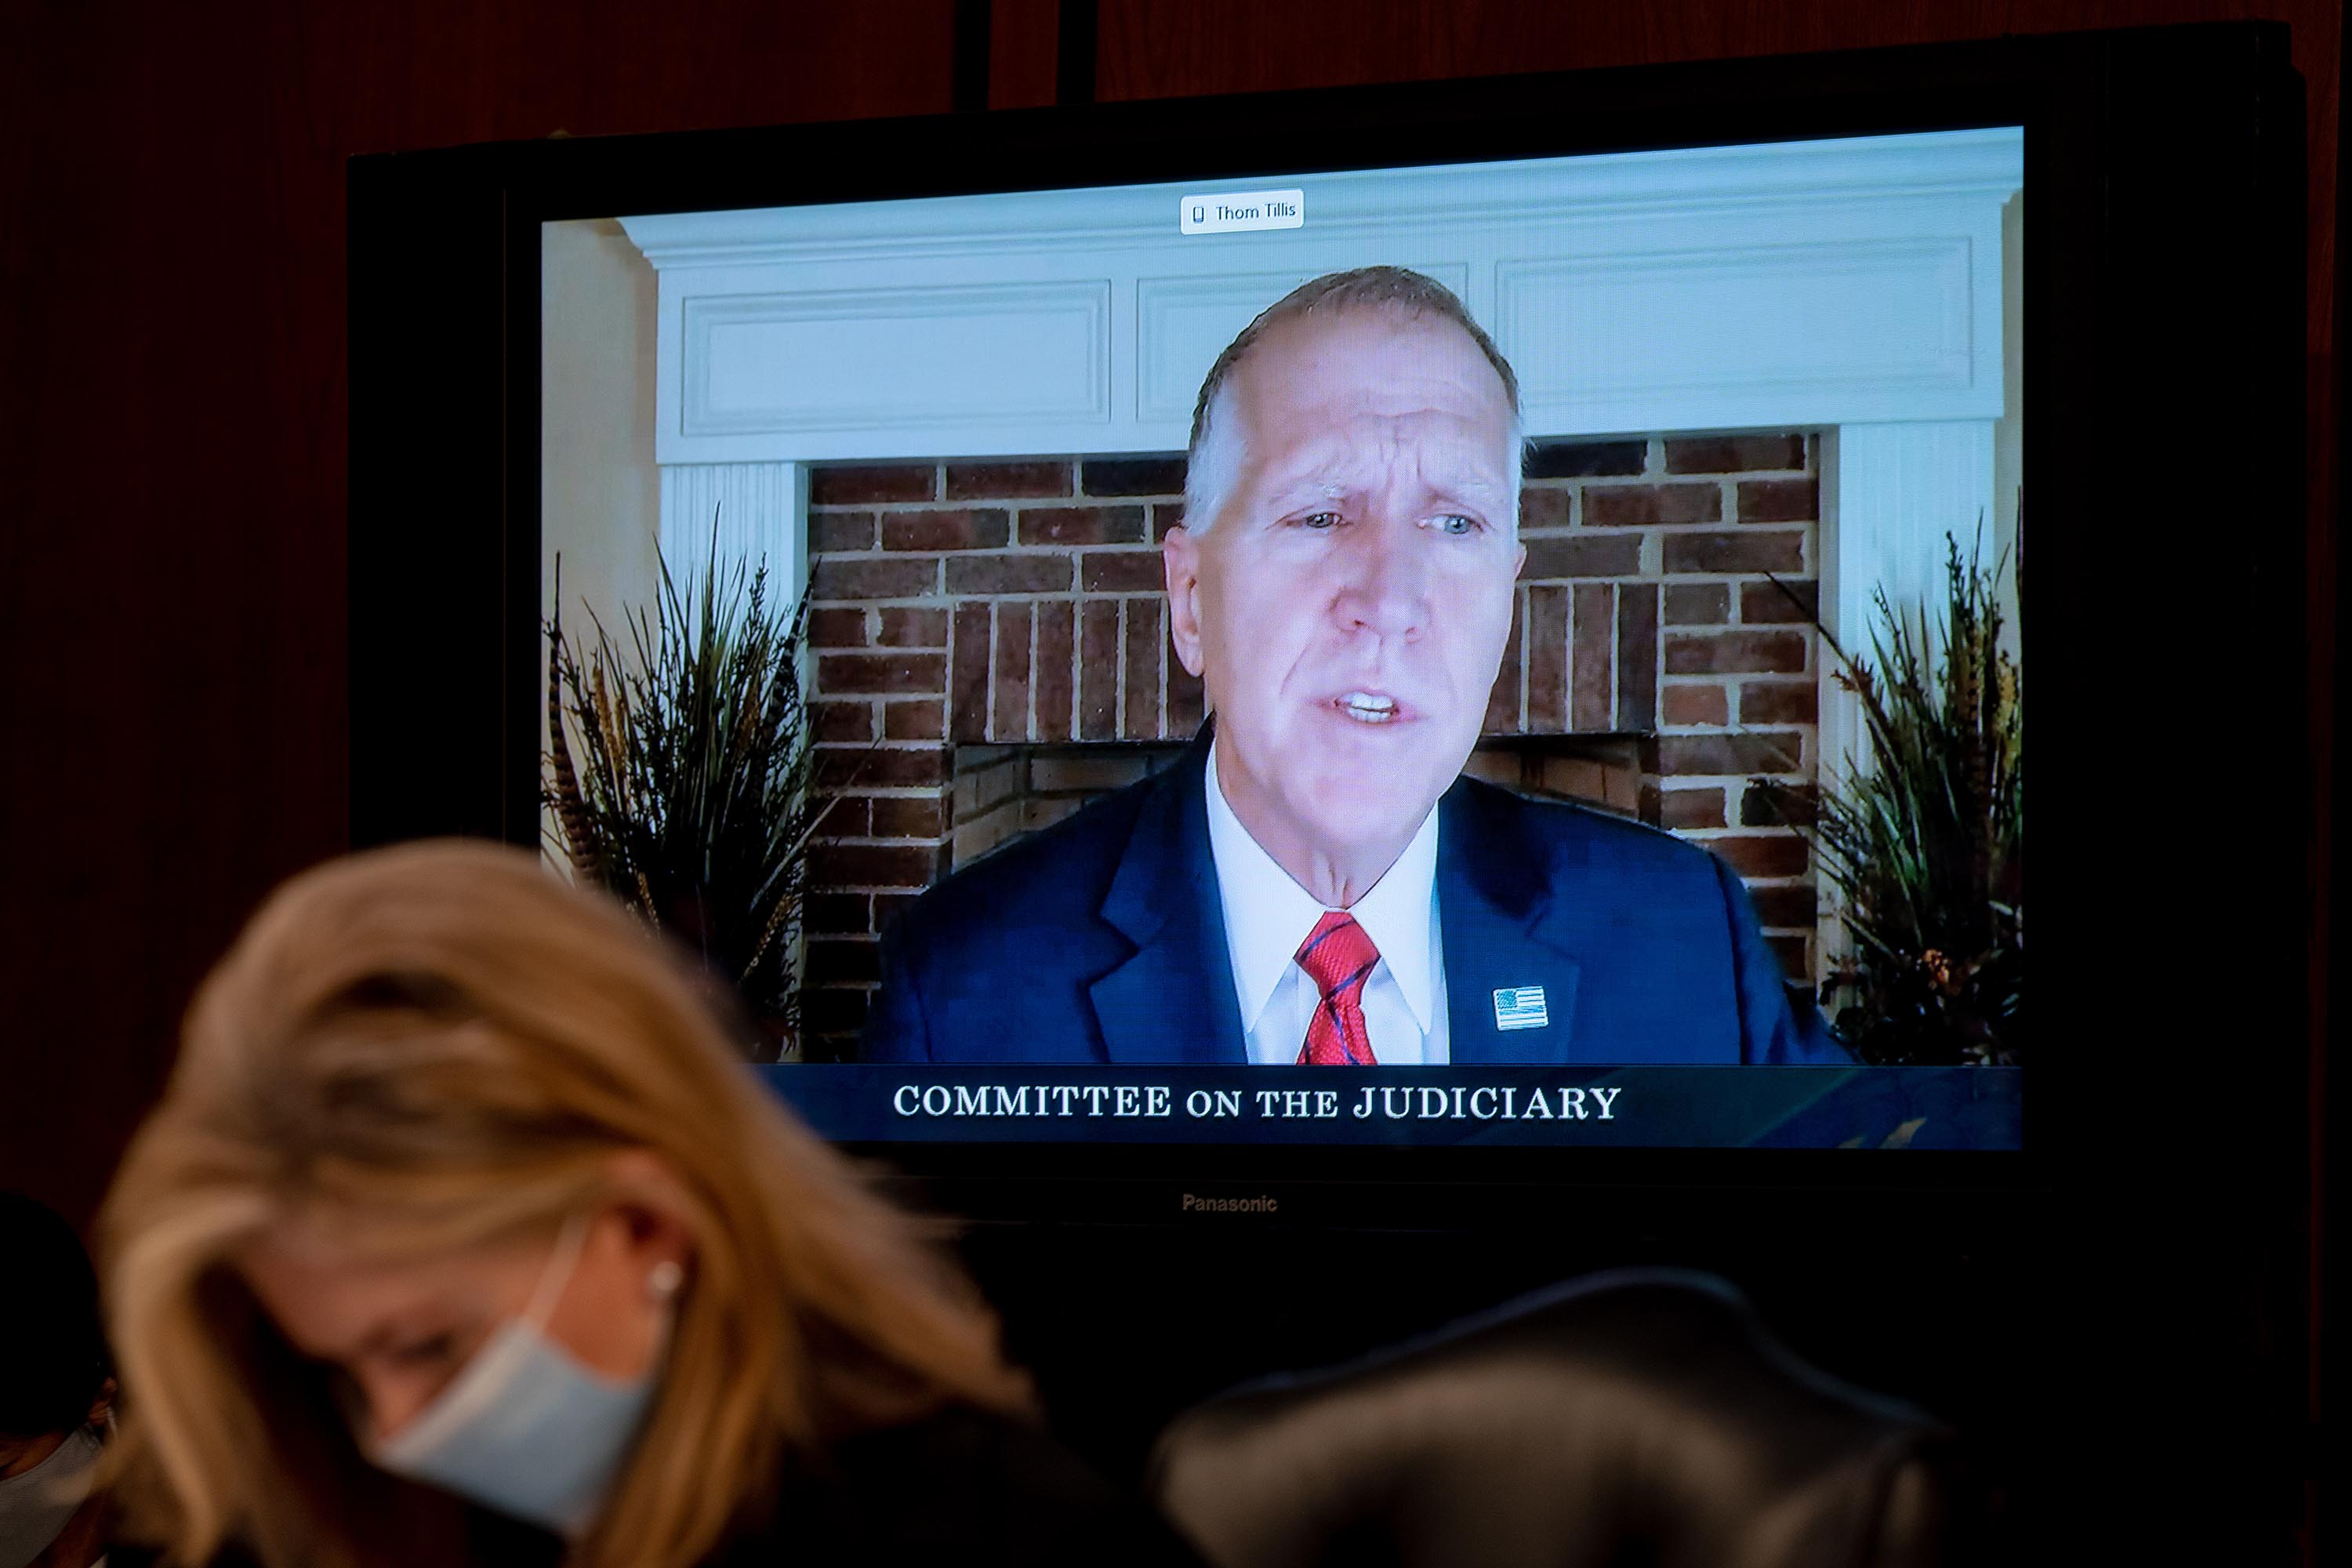 Sen. Thom Tillis is seen on a TV participating remotely during Supreme Court Justice nominee Judge Amy Coney Barrett's Senate Judiciary Committee confirmation hearing on October 12.